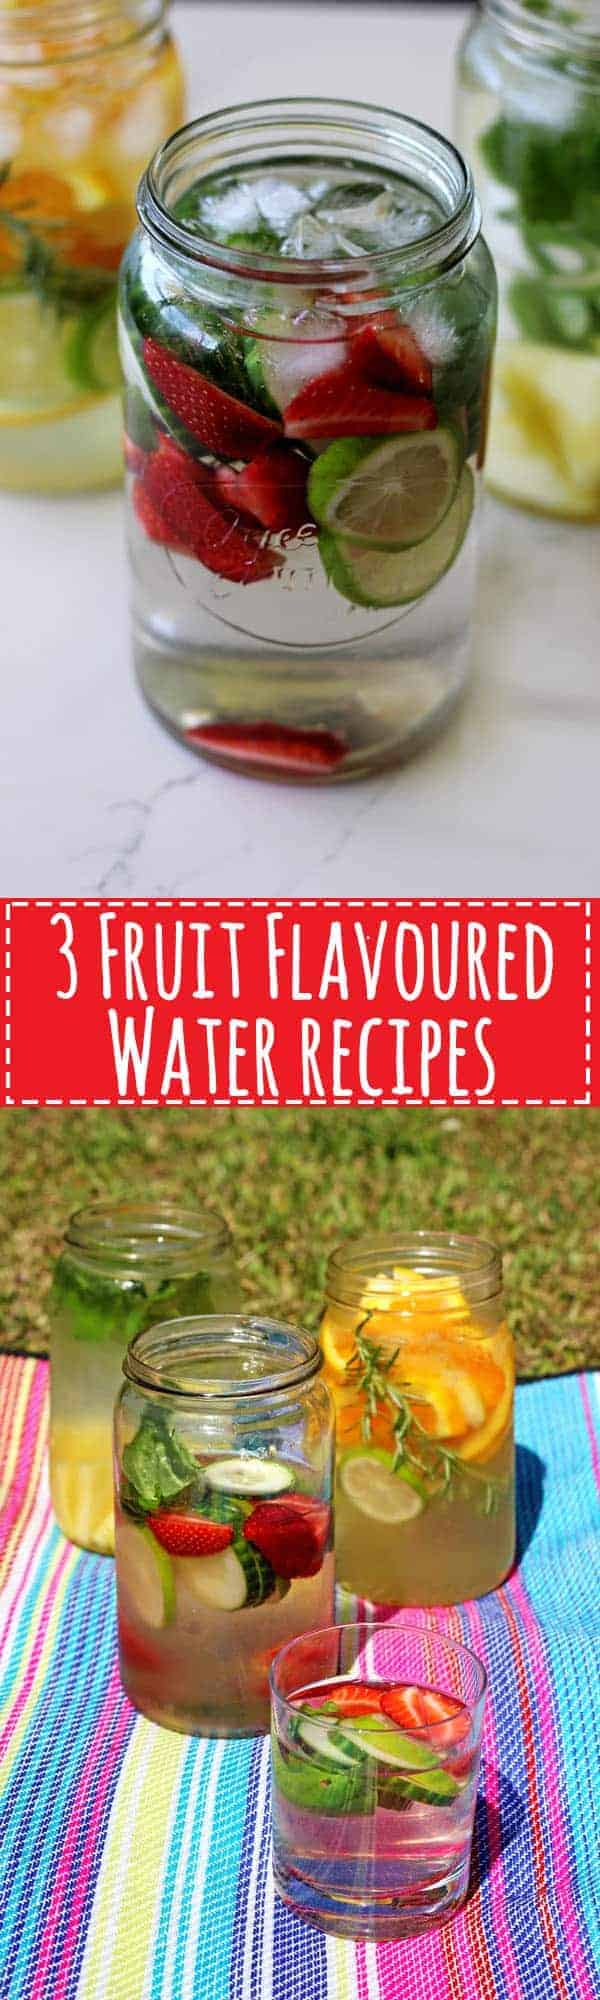 3 Fruit Flavoured Water Recipes - the perfect way to stay hydrated this summer with quick, easy and delicious fruit and herb flavoured water! | thekiwicountrygirl.com